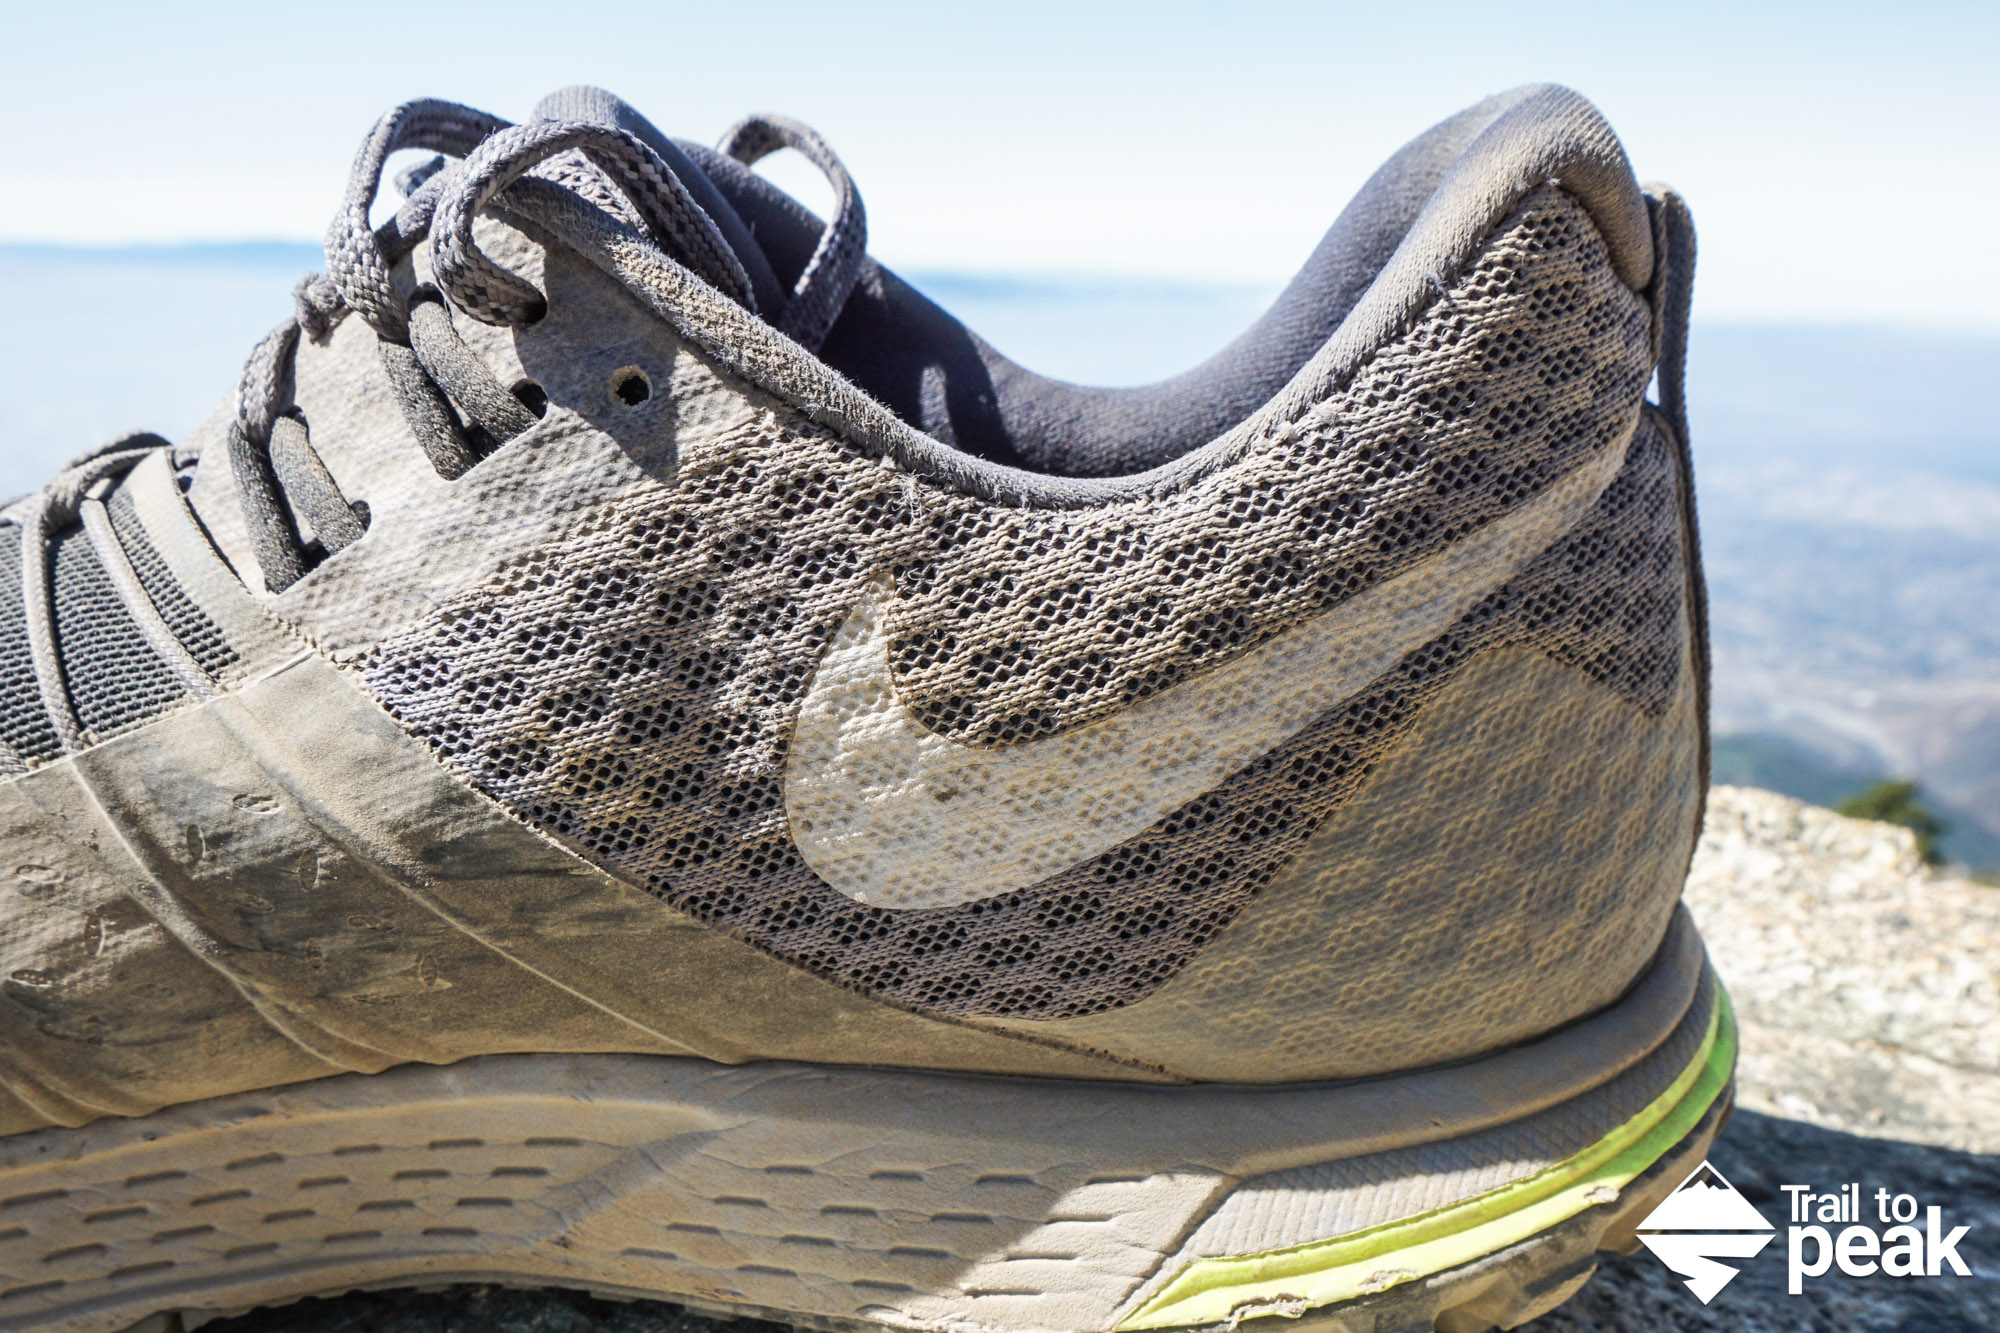 Gear Review: The Nike Wildhorse 4, Is It Better Than The